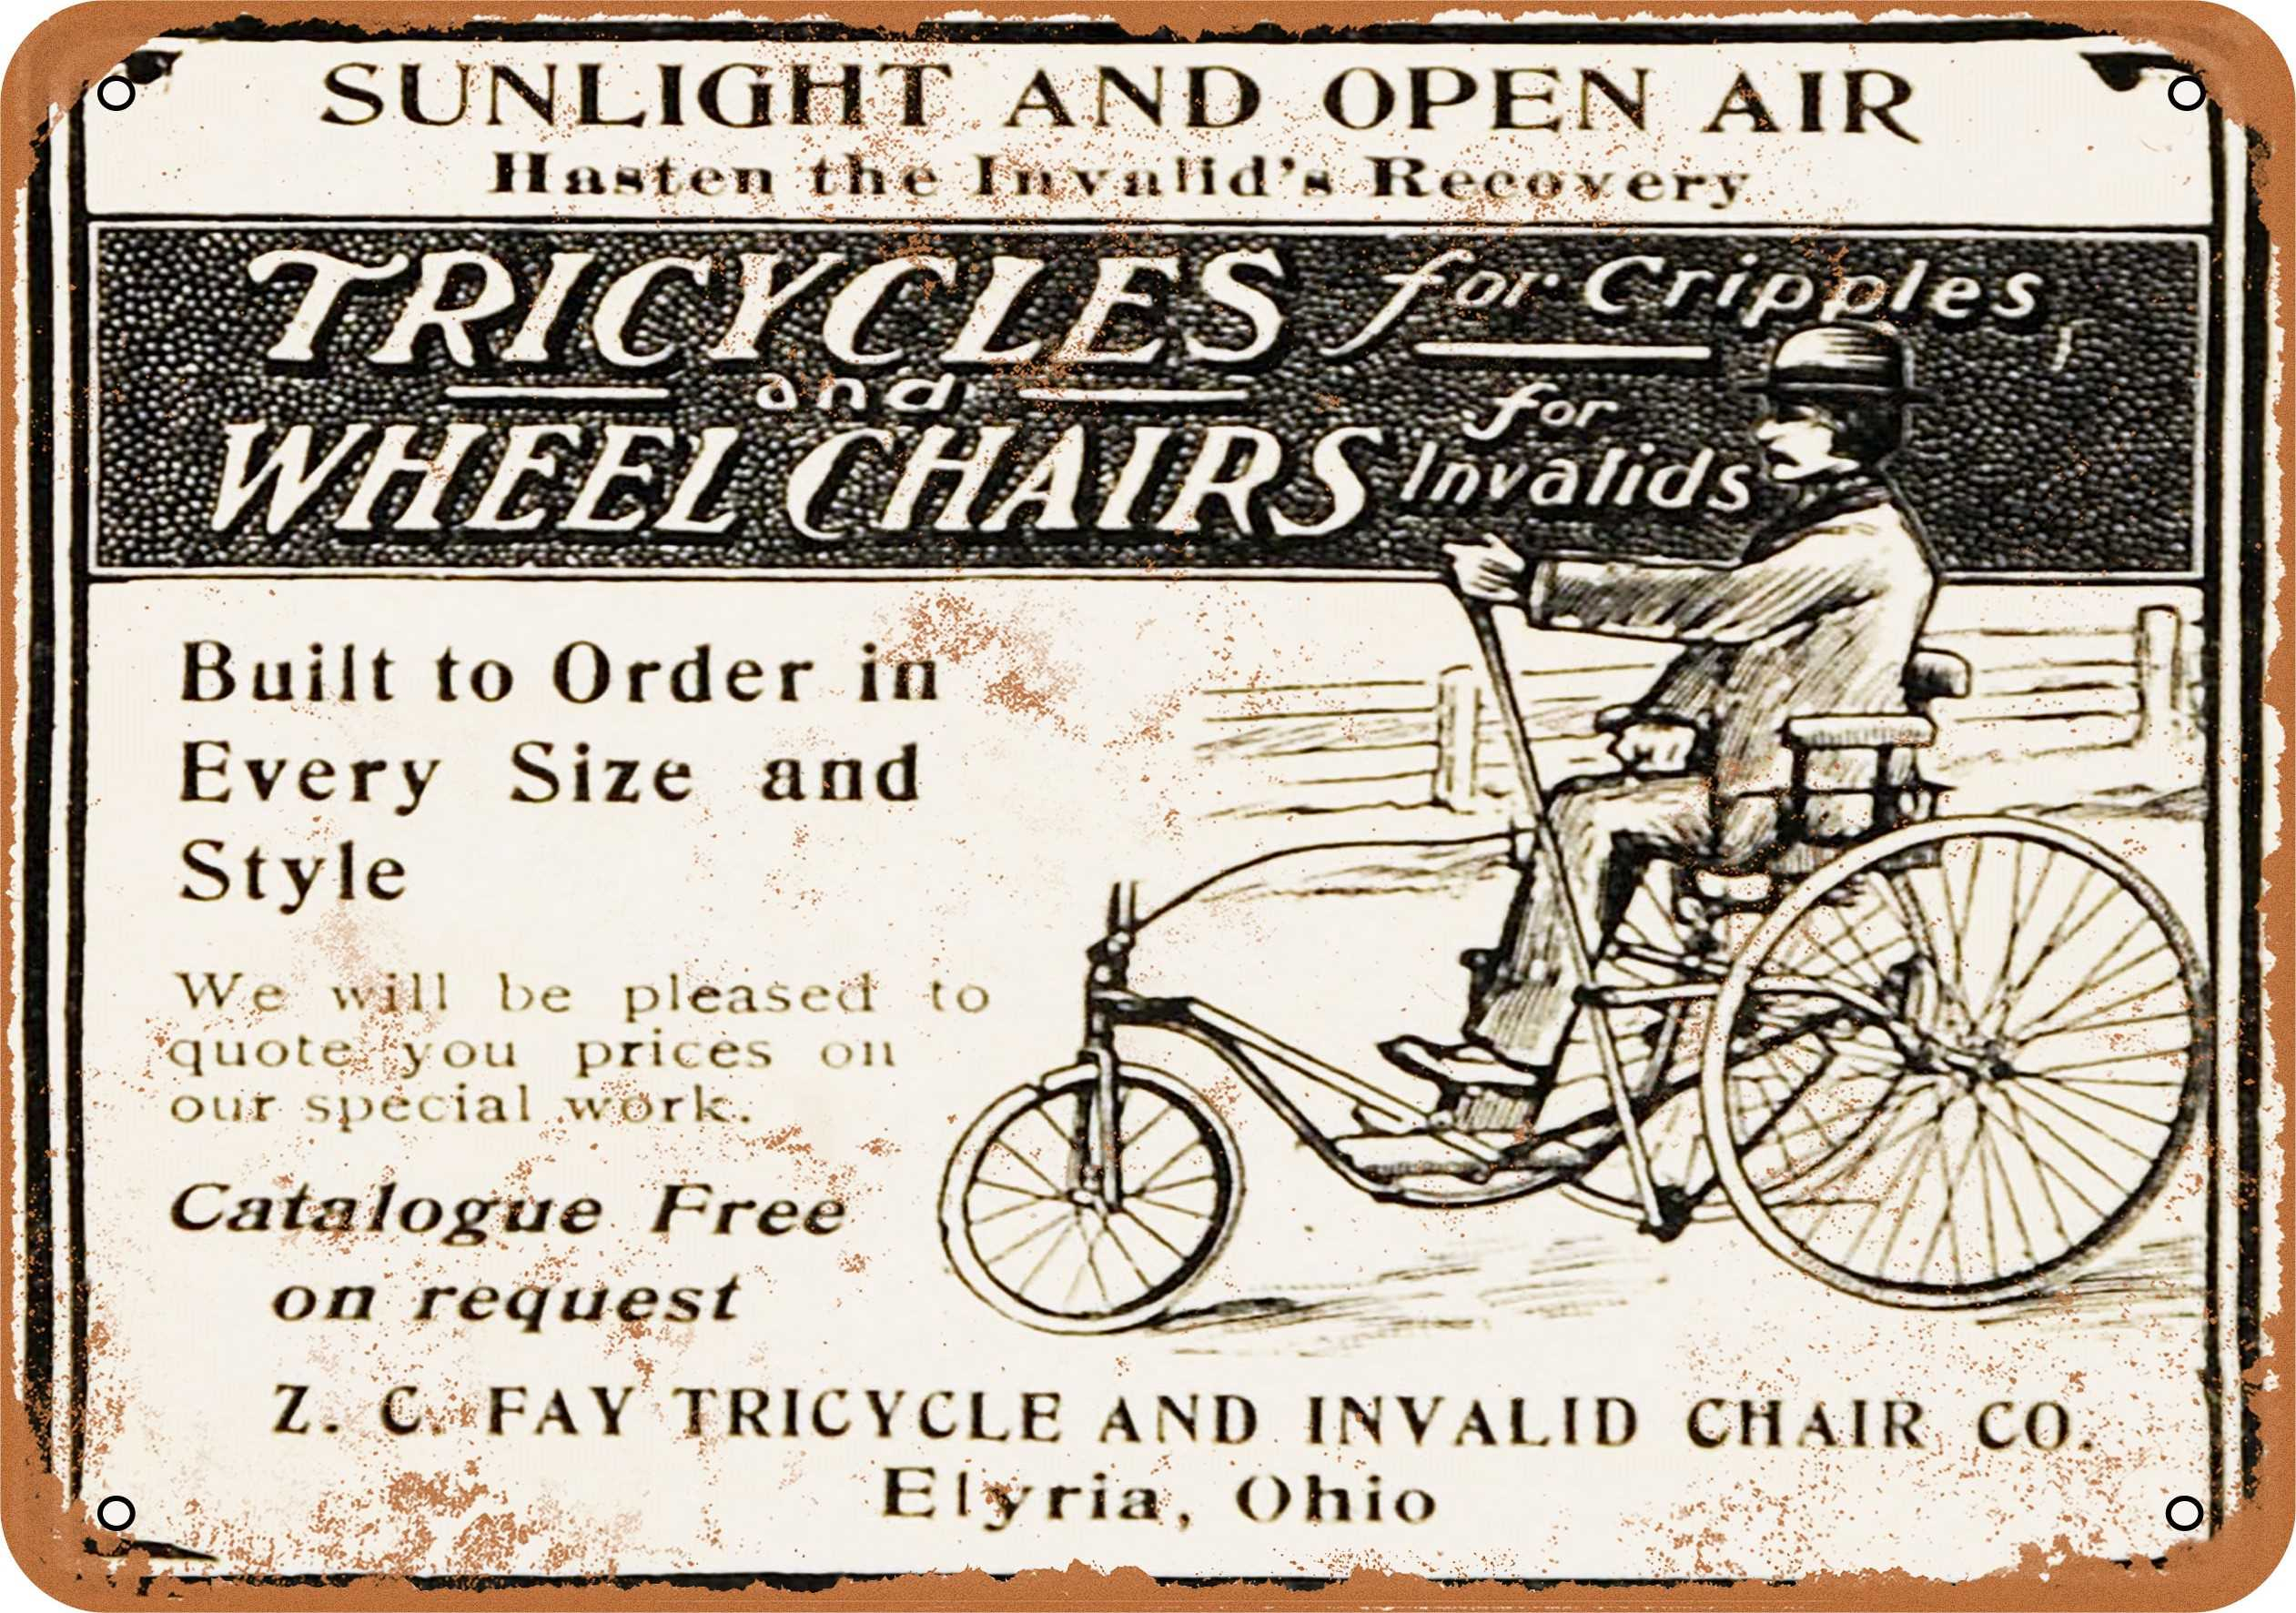 "9"" x 12"" 1902 Tricycles and Wheelchairs for Invalids Vintage Look Reproduction Metal Sign 30059L"